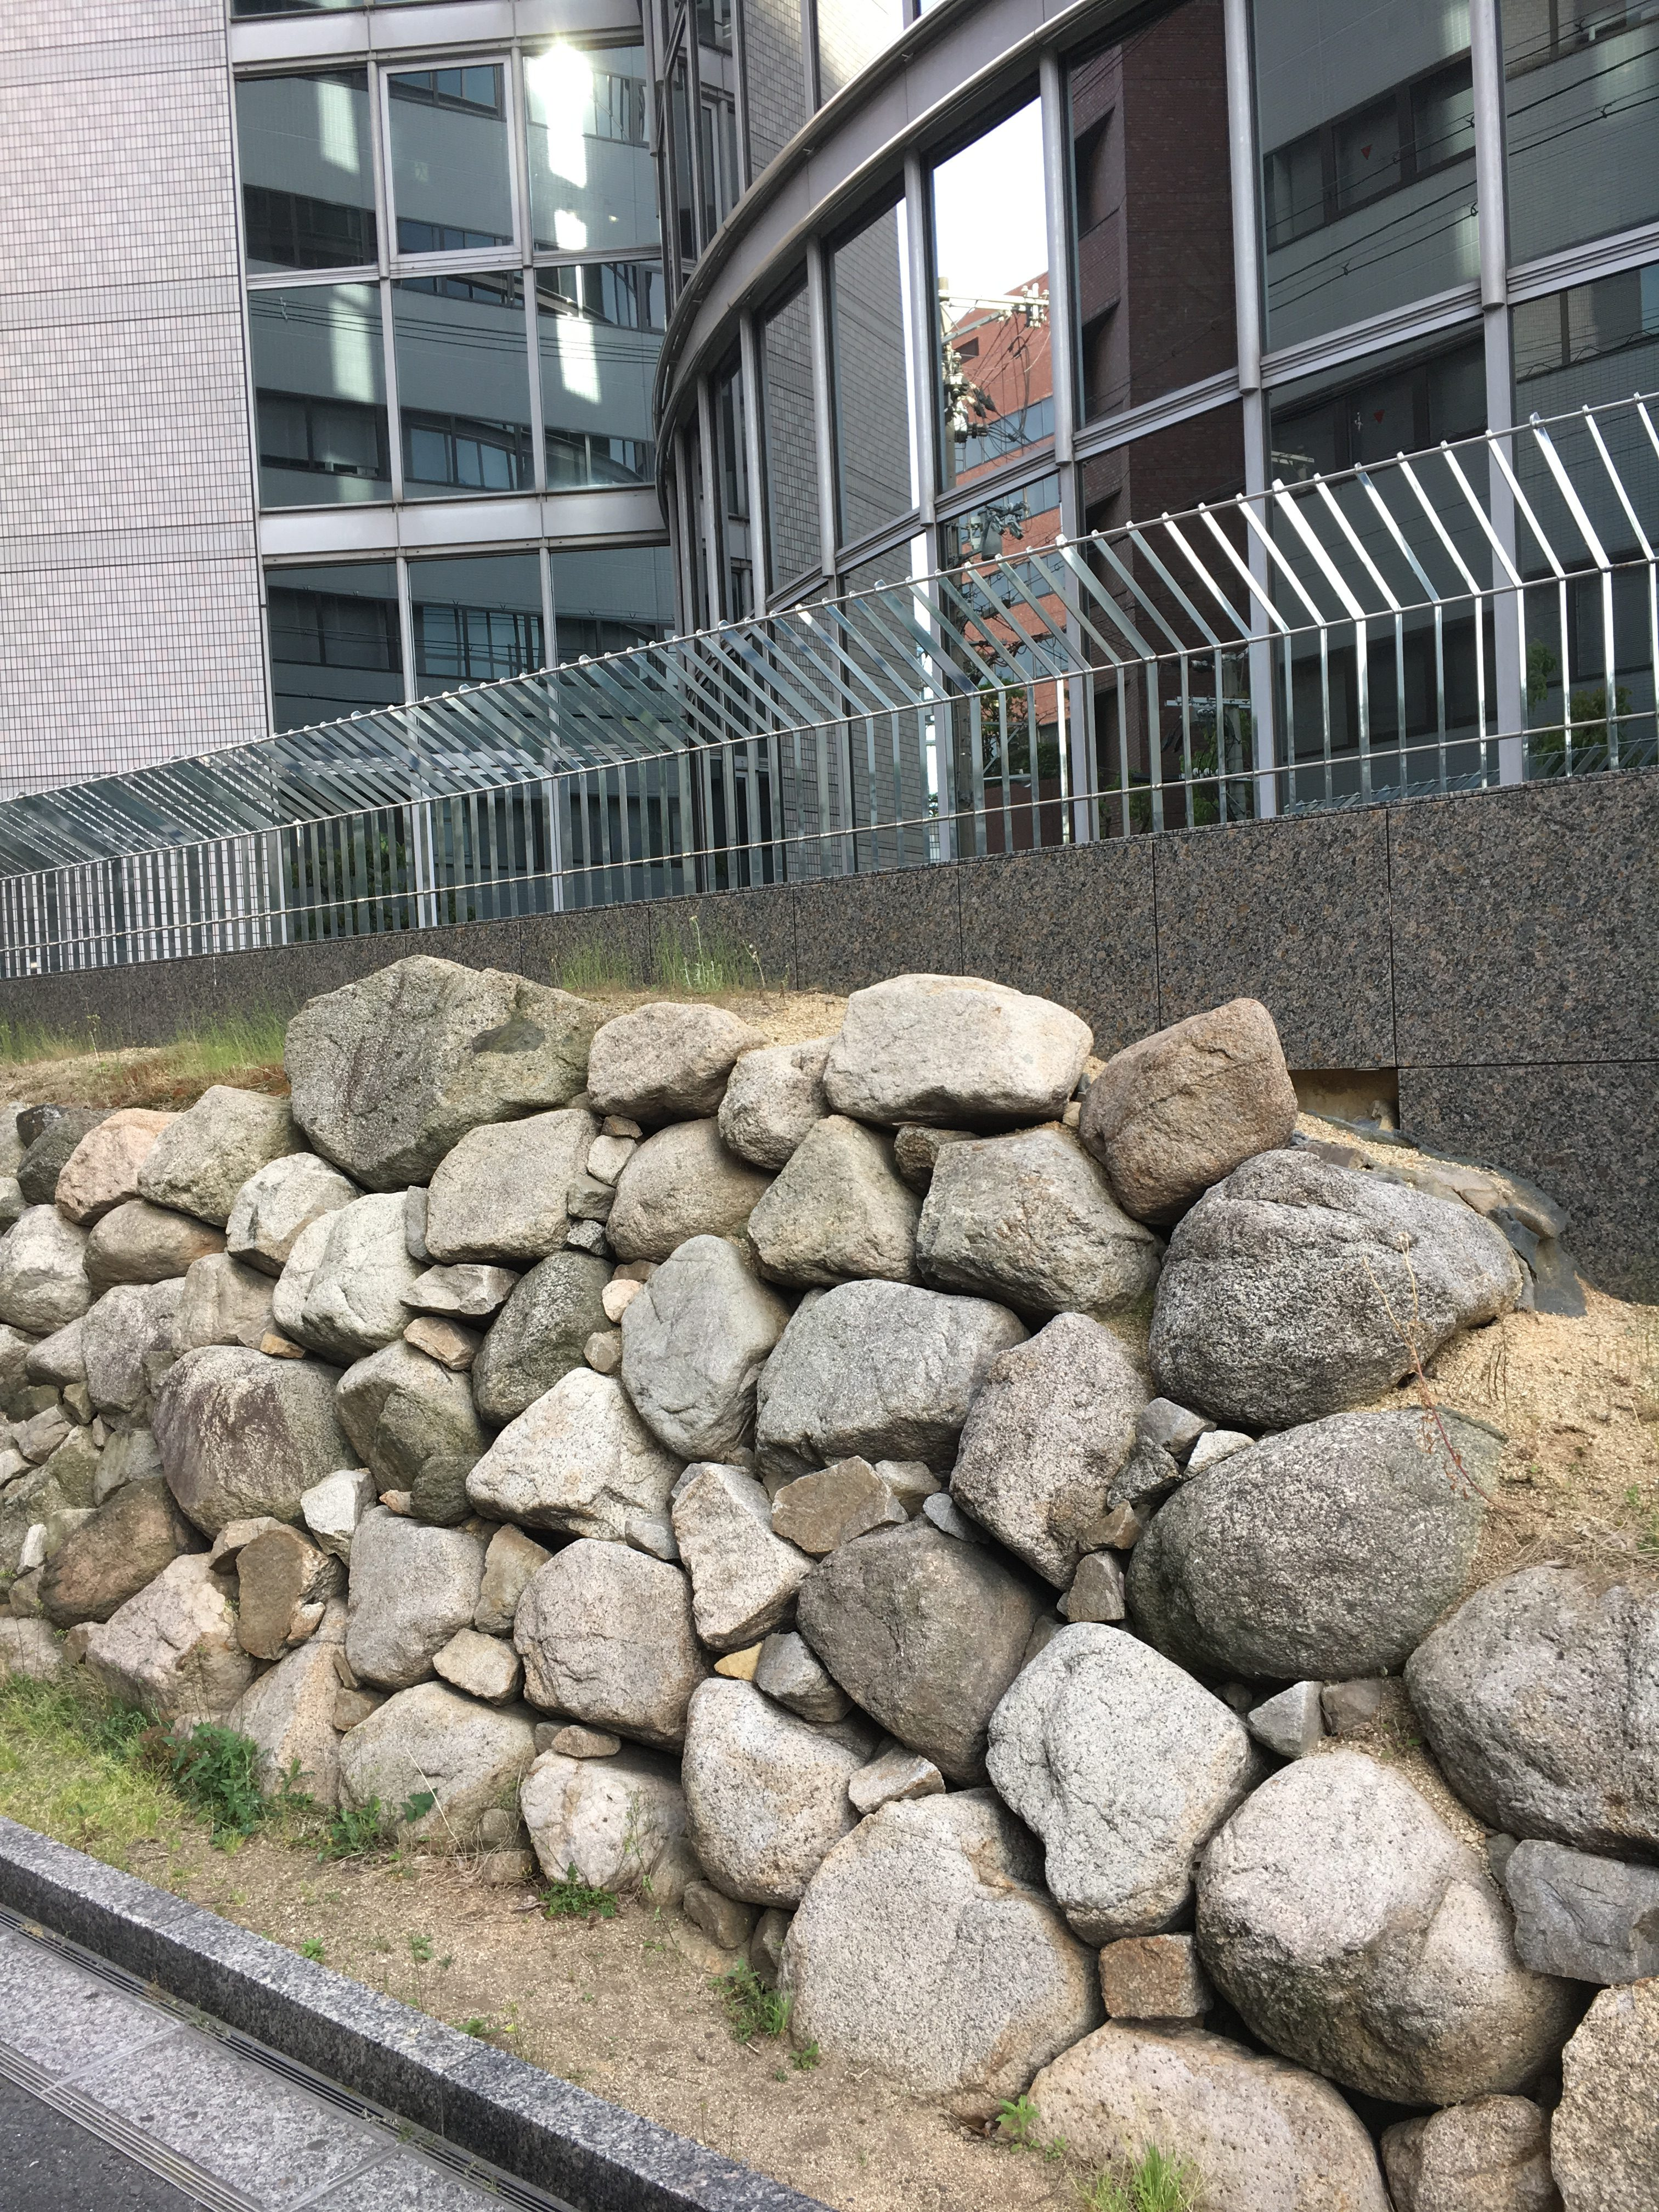 historically valuable remains of Osaka Castle wall